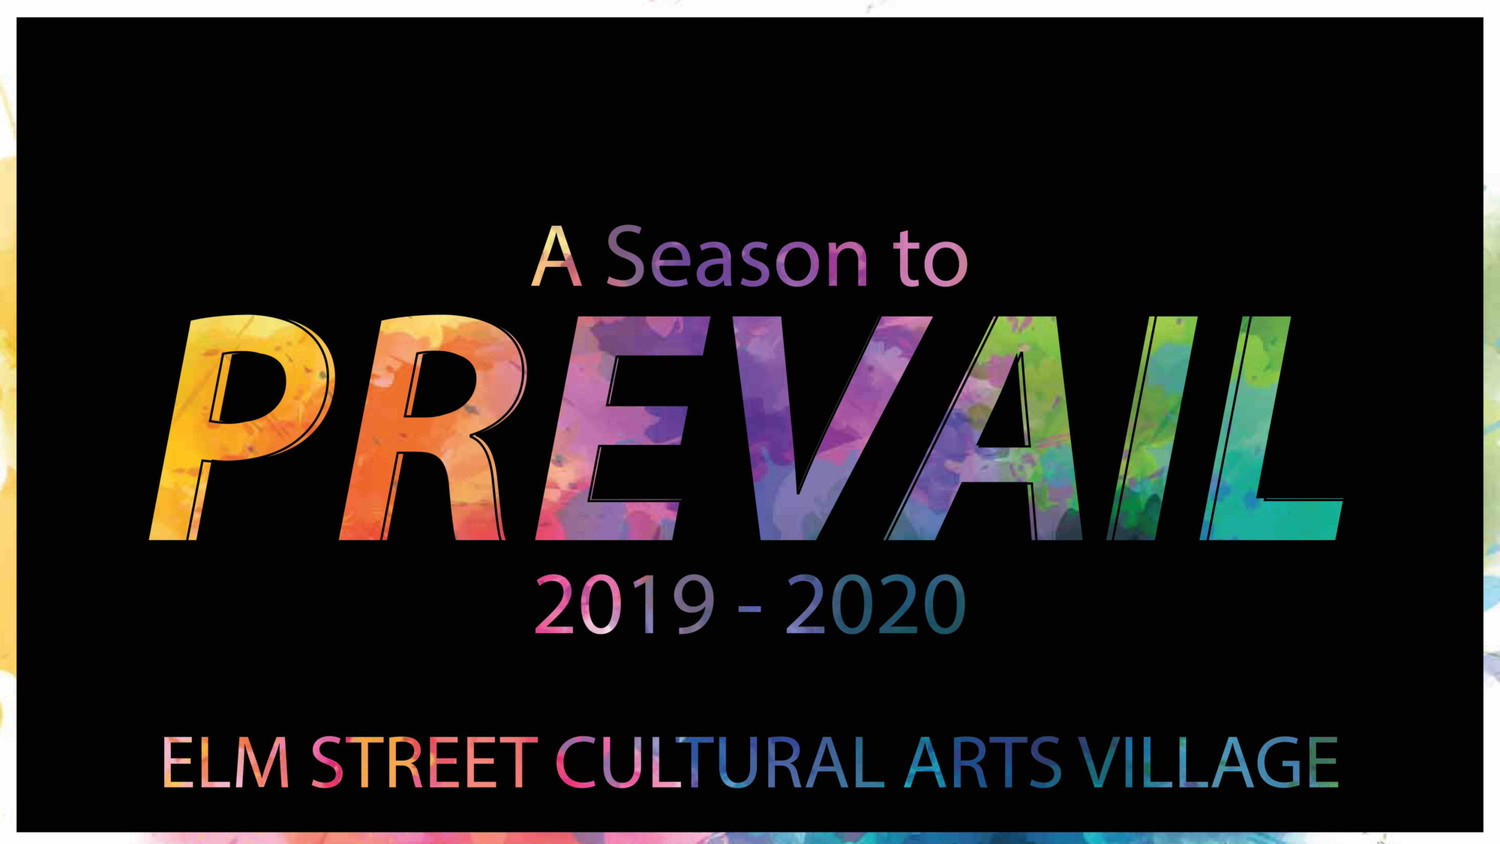 Elm Street Cultural Arts Village Announces 2019/2020 Theatre Season With Off-Broadway Comedy Puffs, Kooman & Dimond Musical, and More!